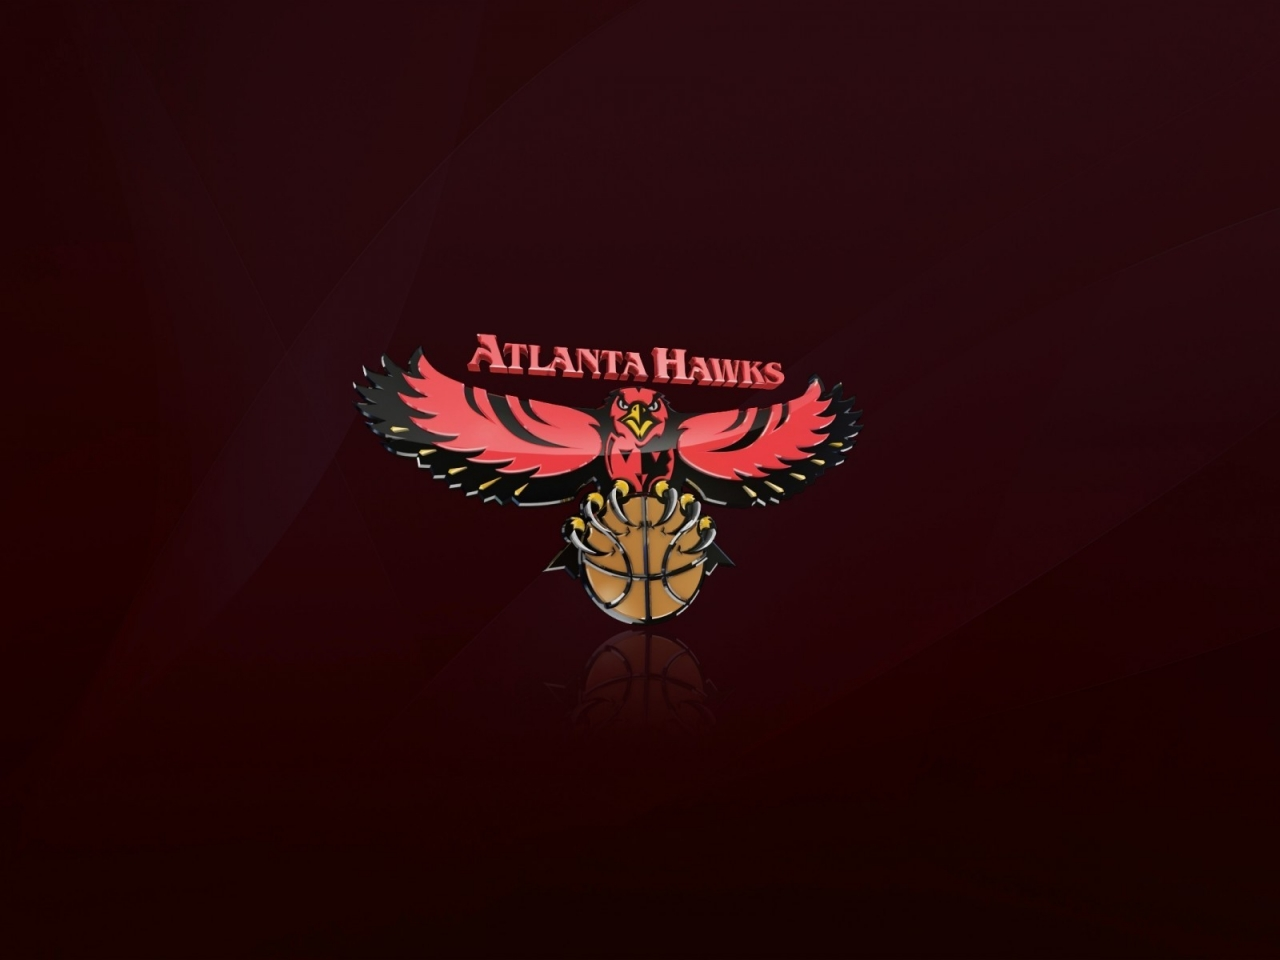 Atlanta Hawks Logo for 1280 x 960 resolution